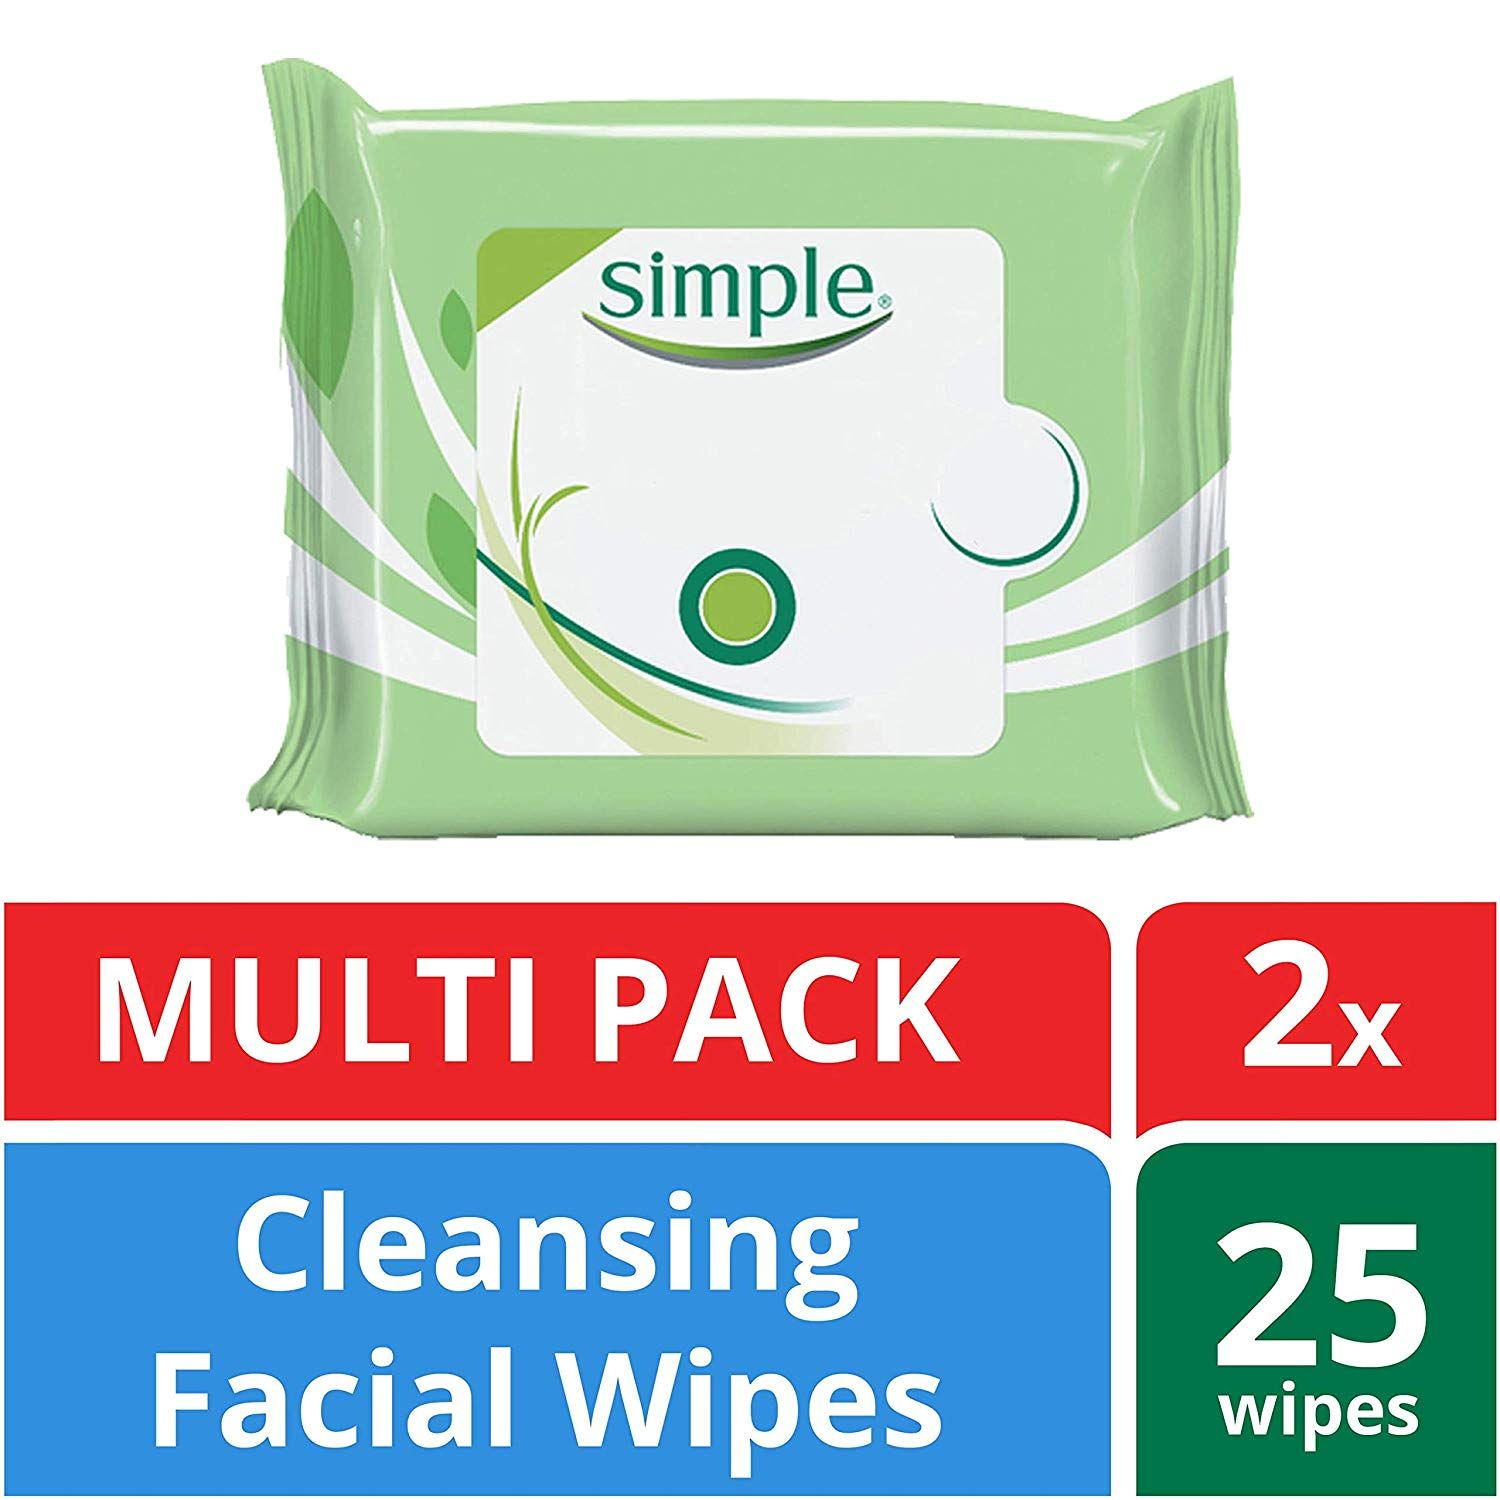 Simple Facial Wipes, Cleansing, 25 ct, Twin Pack Facial